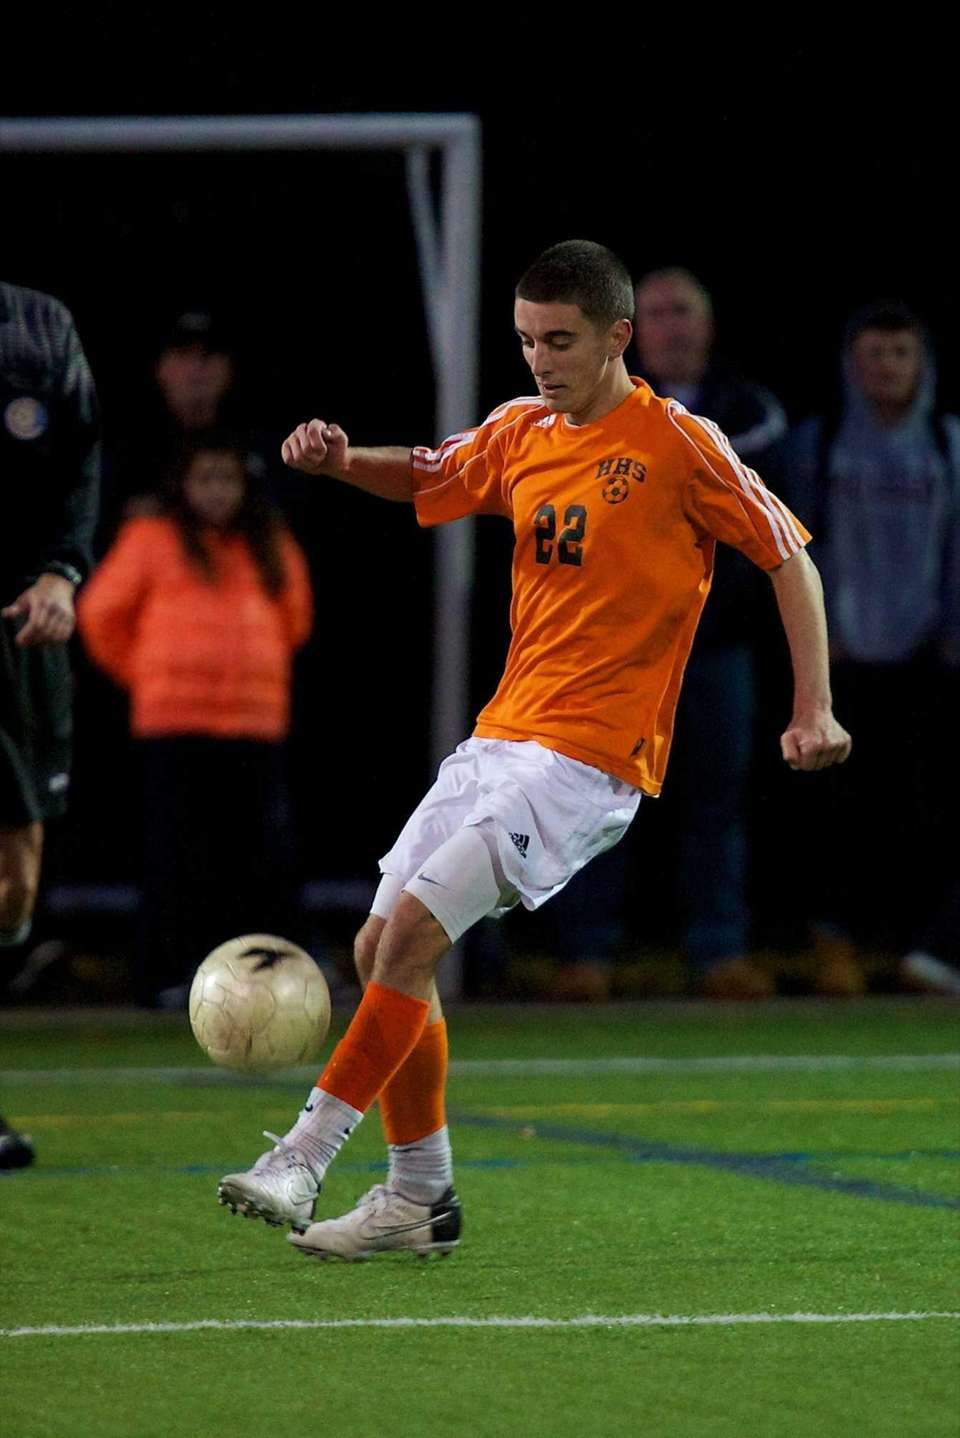 Hicksville's Chirstopher McMullan makes a play on the